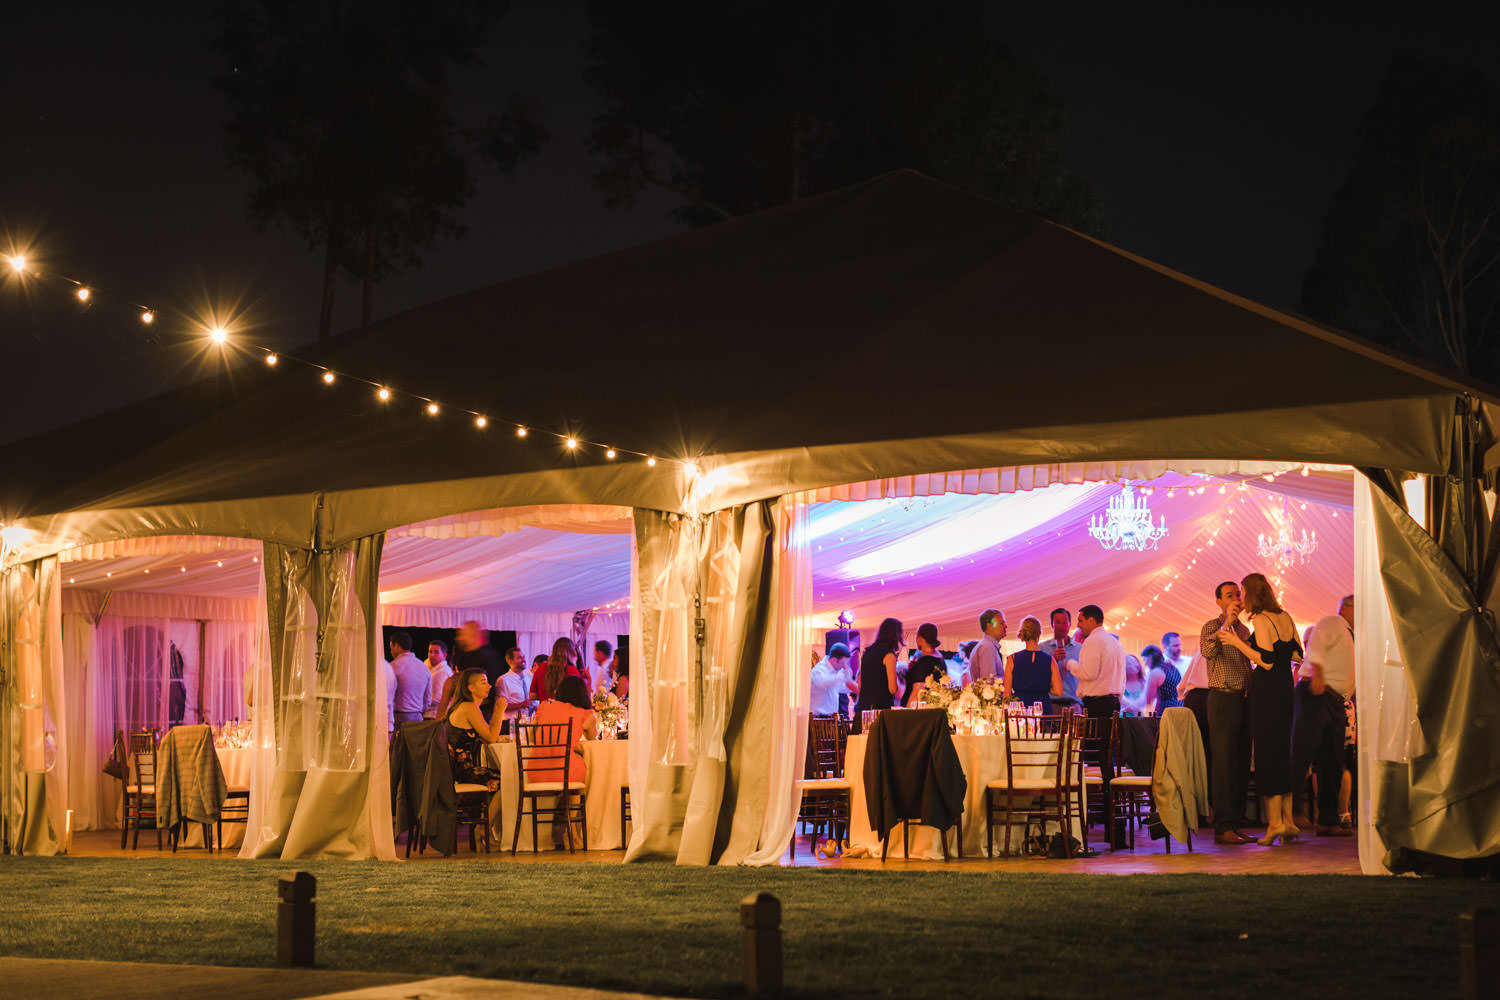 Santaluz Club wedding reception at night with tent and uplights, Cavin Elizabeth Photography